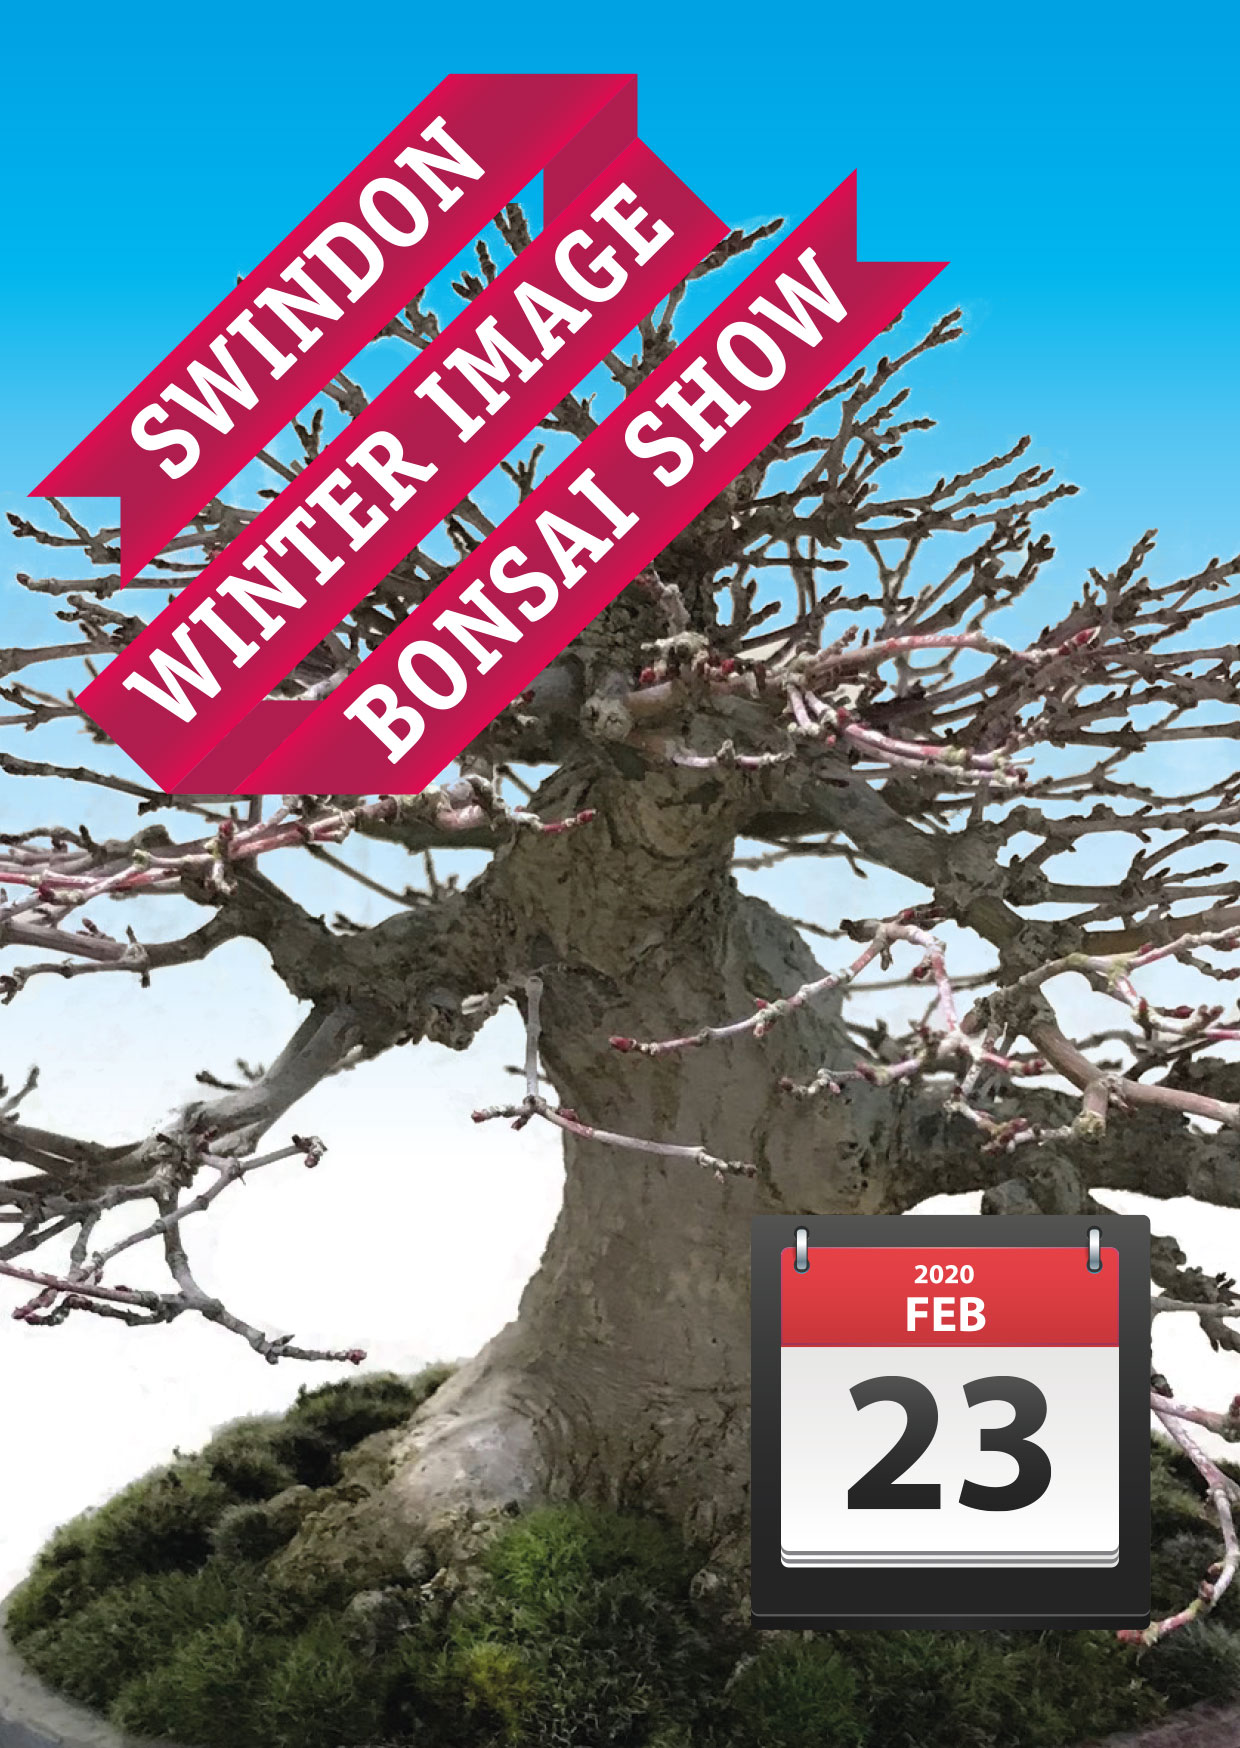 Swindon Bonsai Club Winter Show 23rd Feb 2020